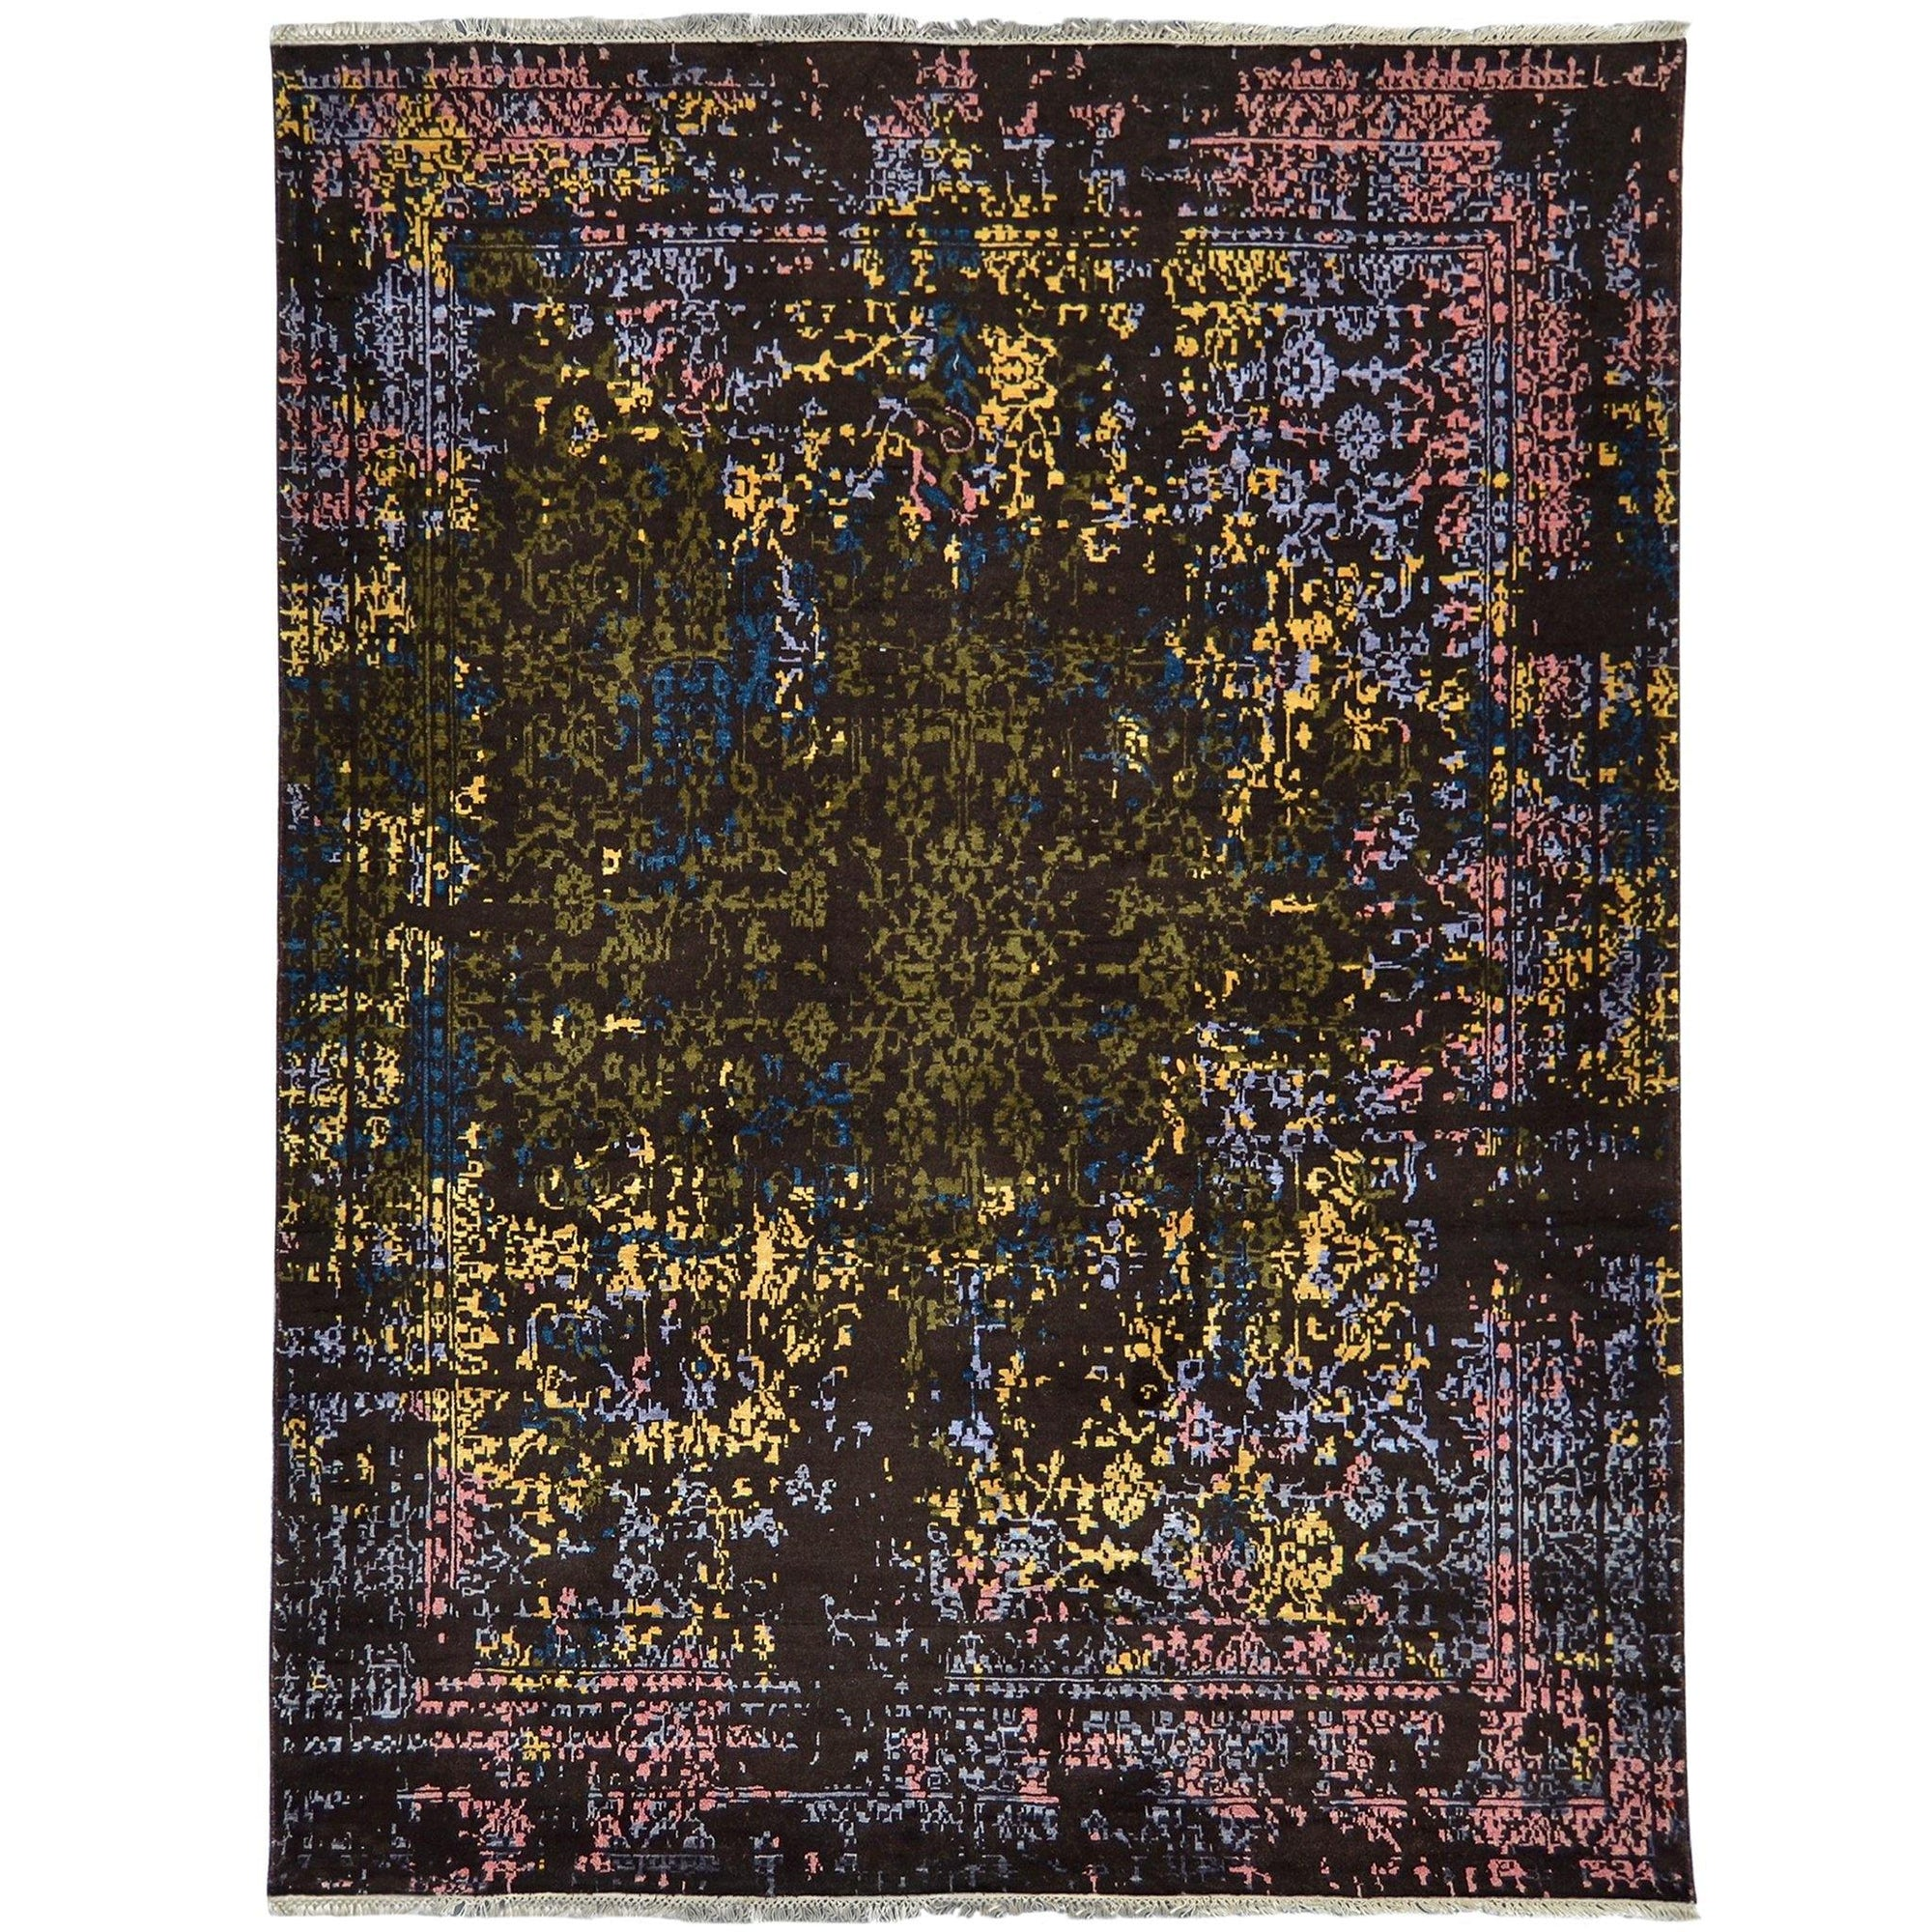 Contemporary Fine Hand-knotted Wool & Bamboo Silk Rug 158cm x 222cm Persian-Rug | House-of-Haghi | NewMarket | Auckland | NZ | Handmade Persian Rugs | Hand Knotted Persian Rugs